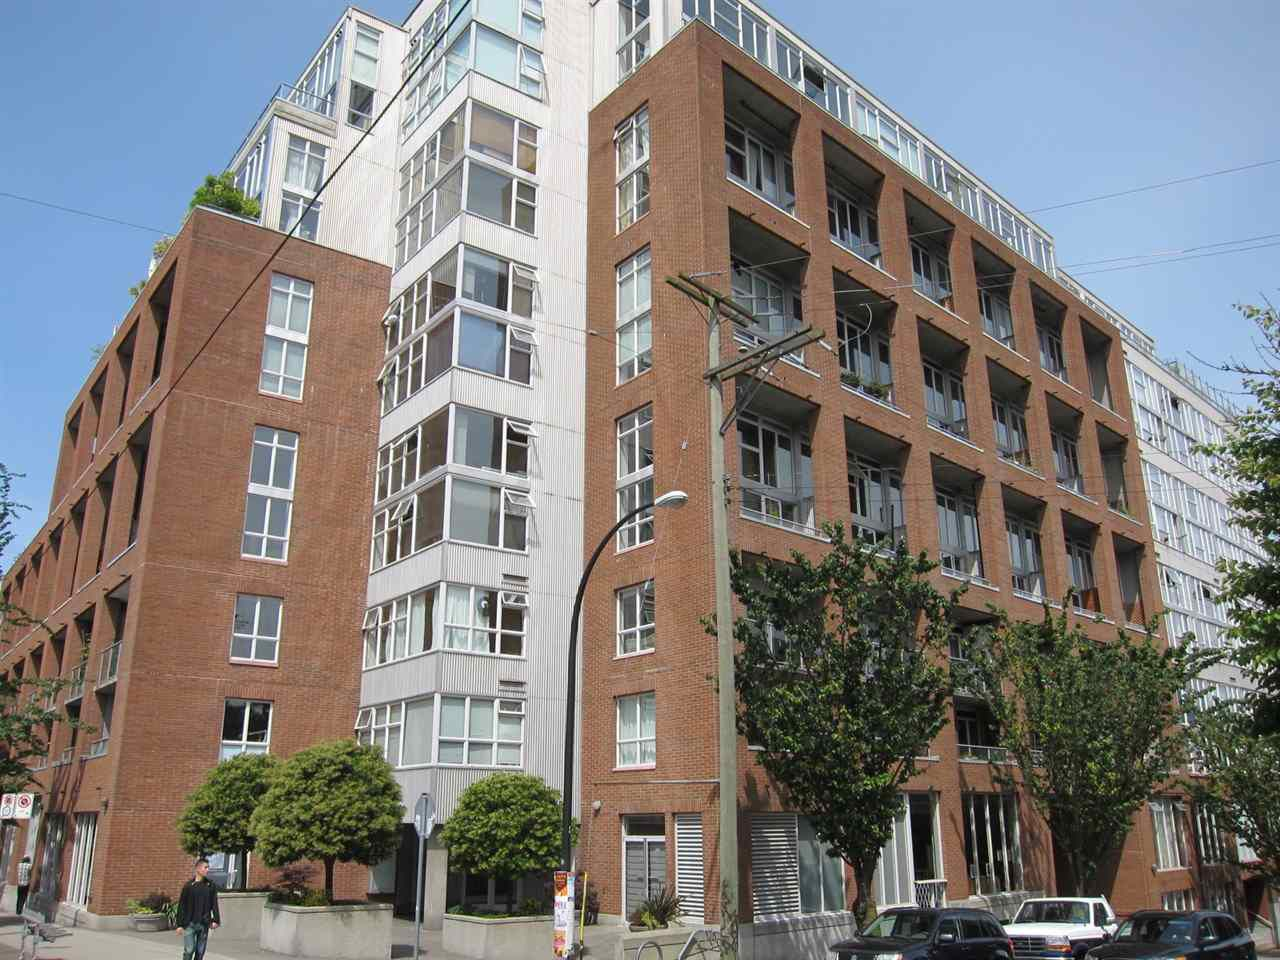 """Main Photo: 428 289 ALEXANDER Street in Vancouver: Hastings Condo for sale in """"THE EDGE"""" (Vancouver East)  : MLS®# R2079369"""